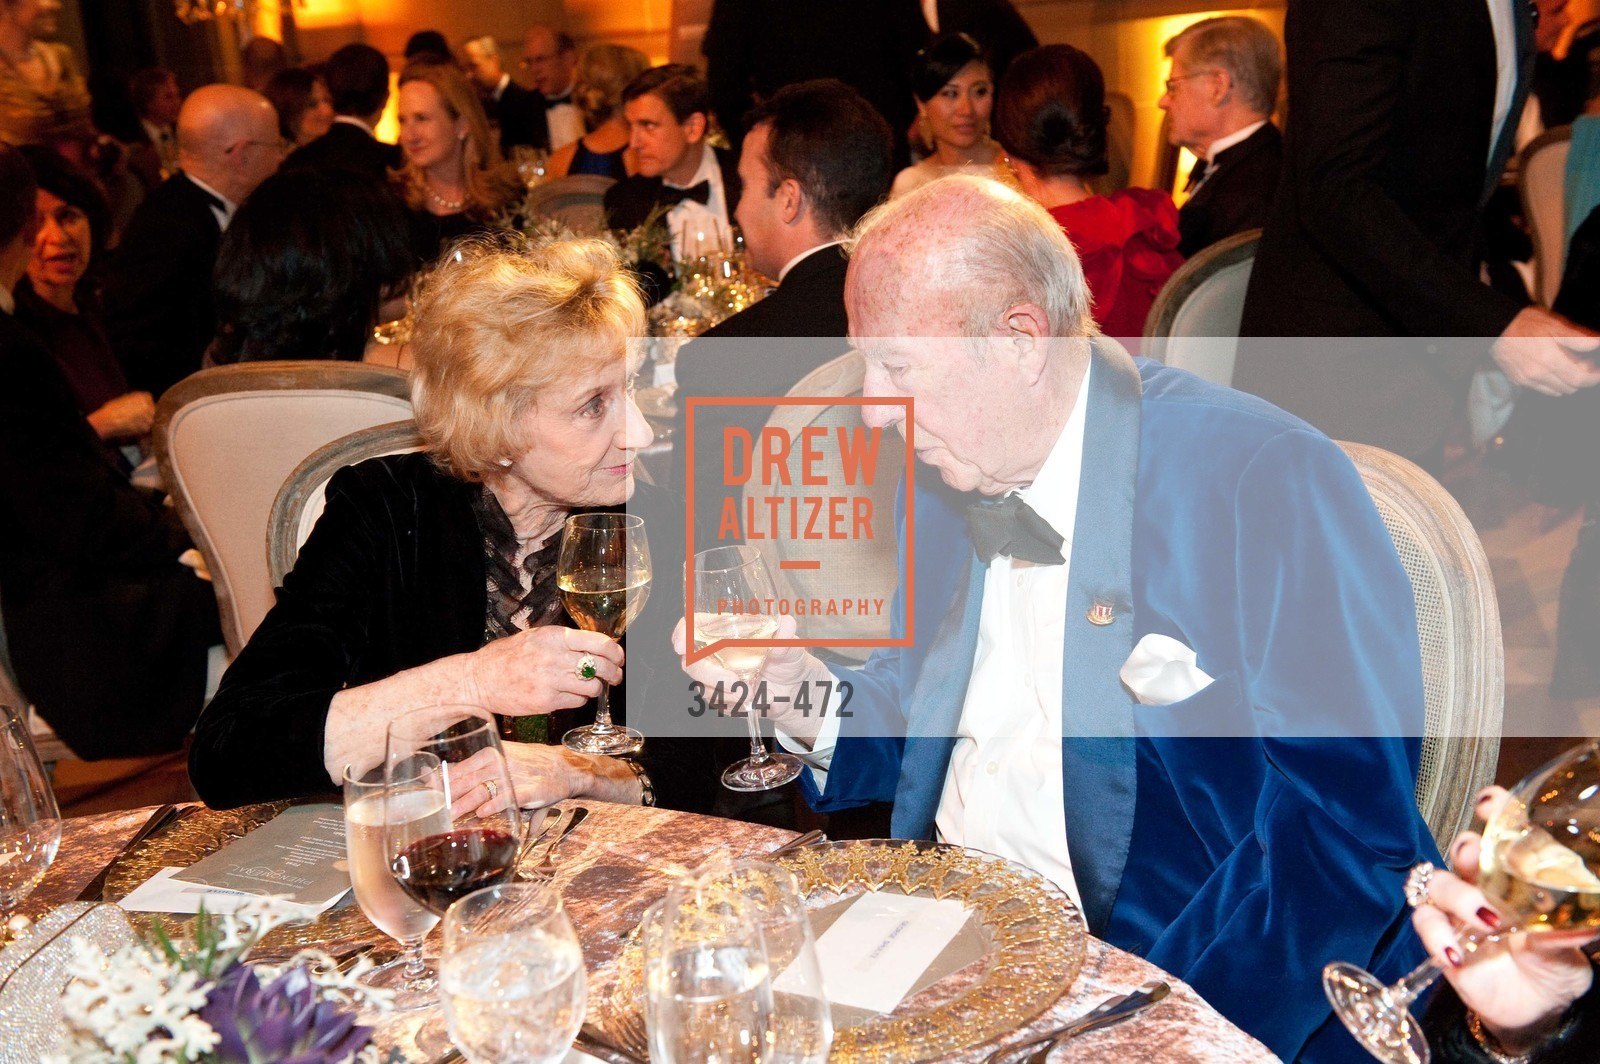 Nancy Bechtle, George Shultz, SAN FRANCISCO BALLET Opening Night Gala: PHENOMENAL - Intermission & Dinner, US. SF City Hall, January 22nd, 2014,Drew Altizer, Drew Altizer Photography, full-service event agency, private events, San Francisco photographer, photographer California